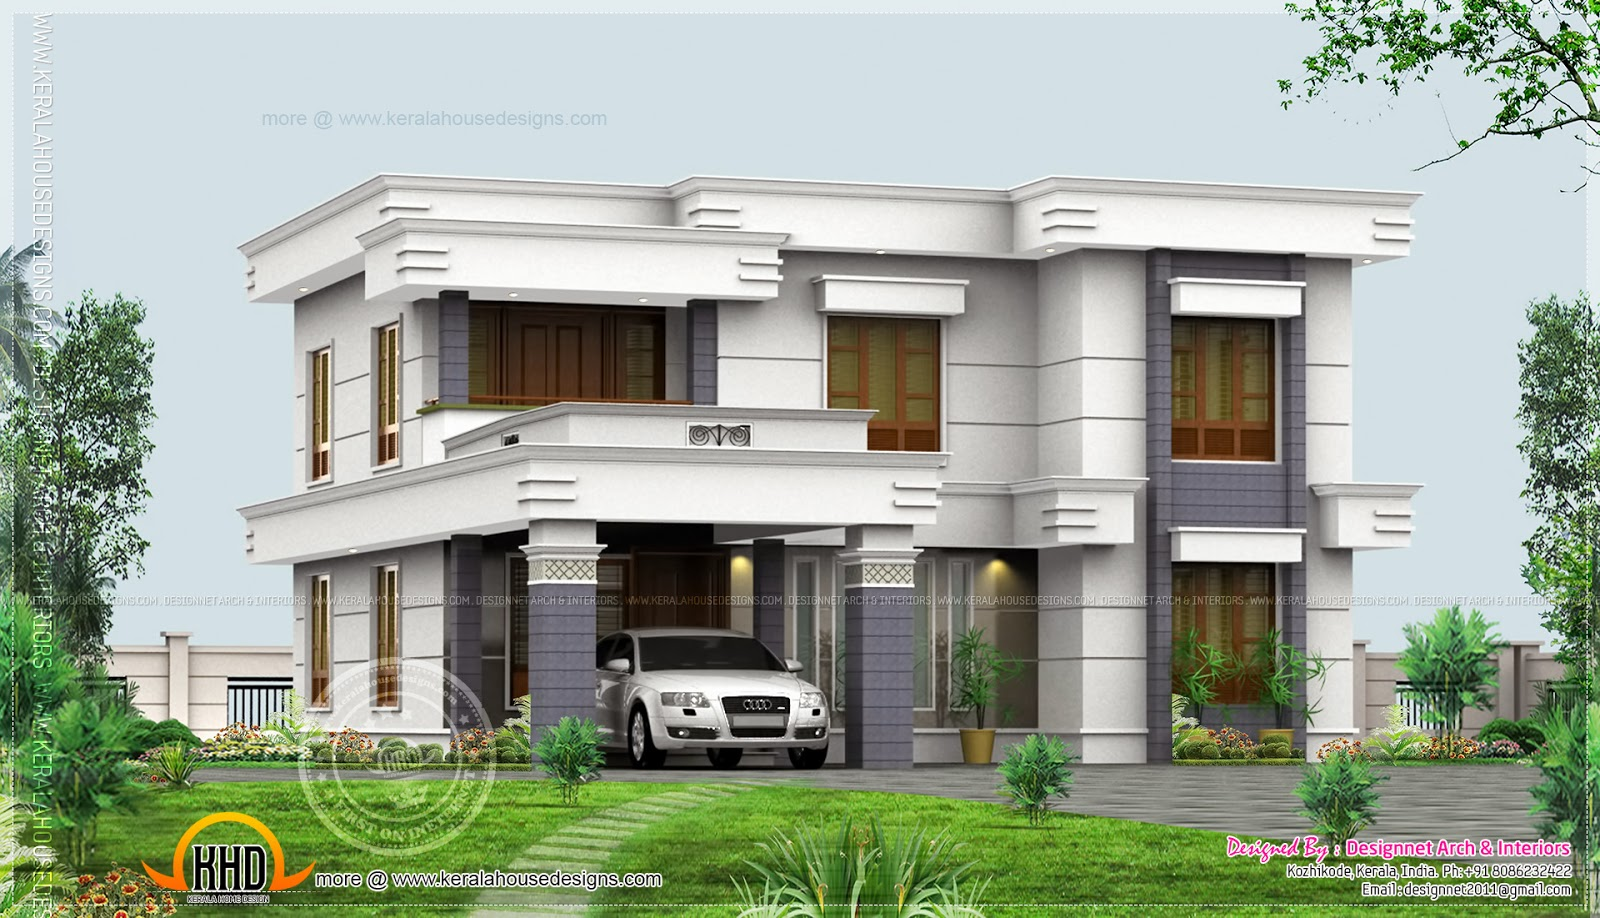 4 Bedroom Flat Roof Design In 2500 Indian House Plans